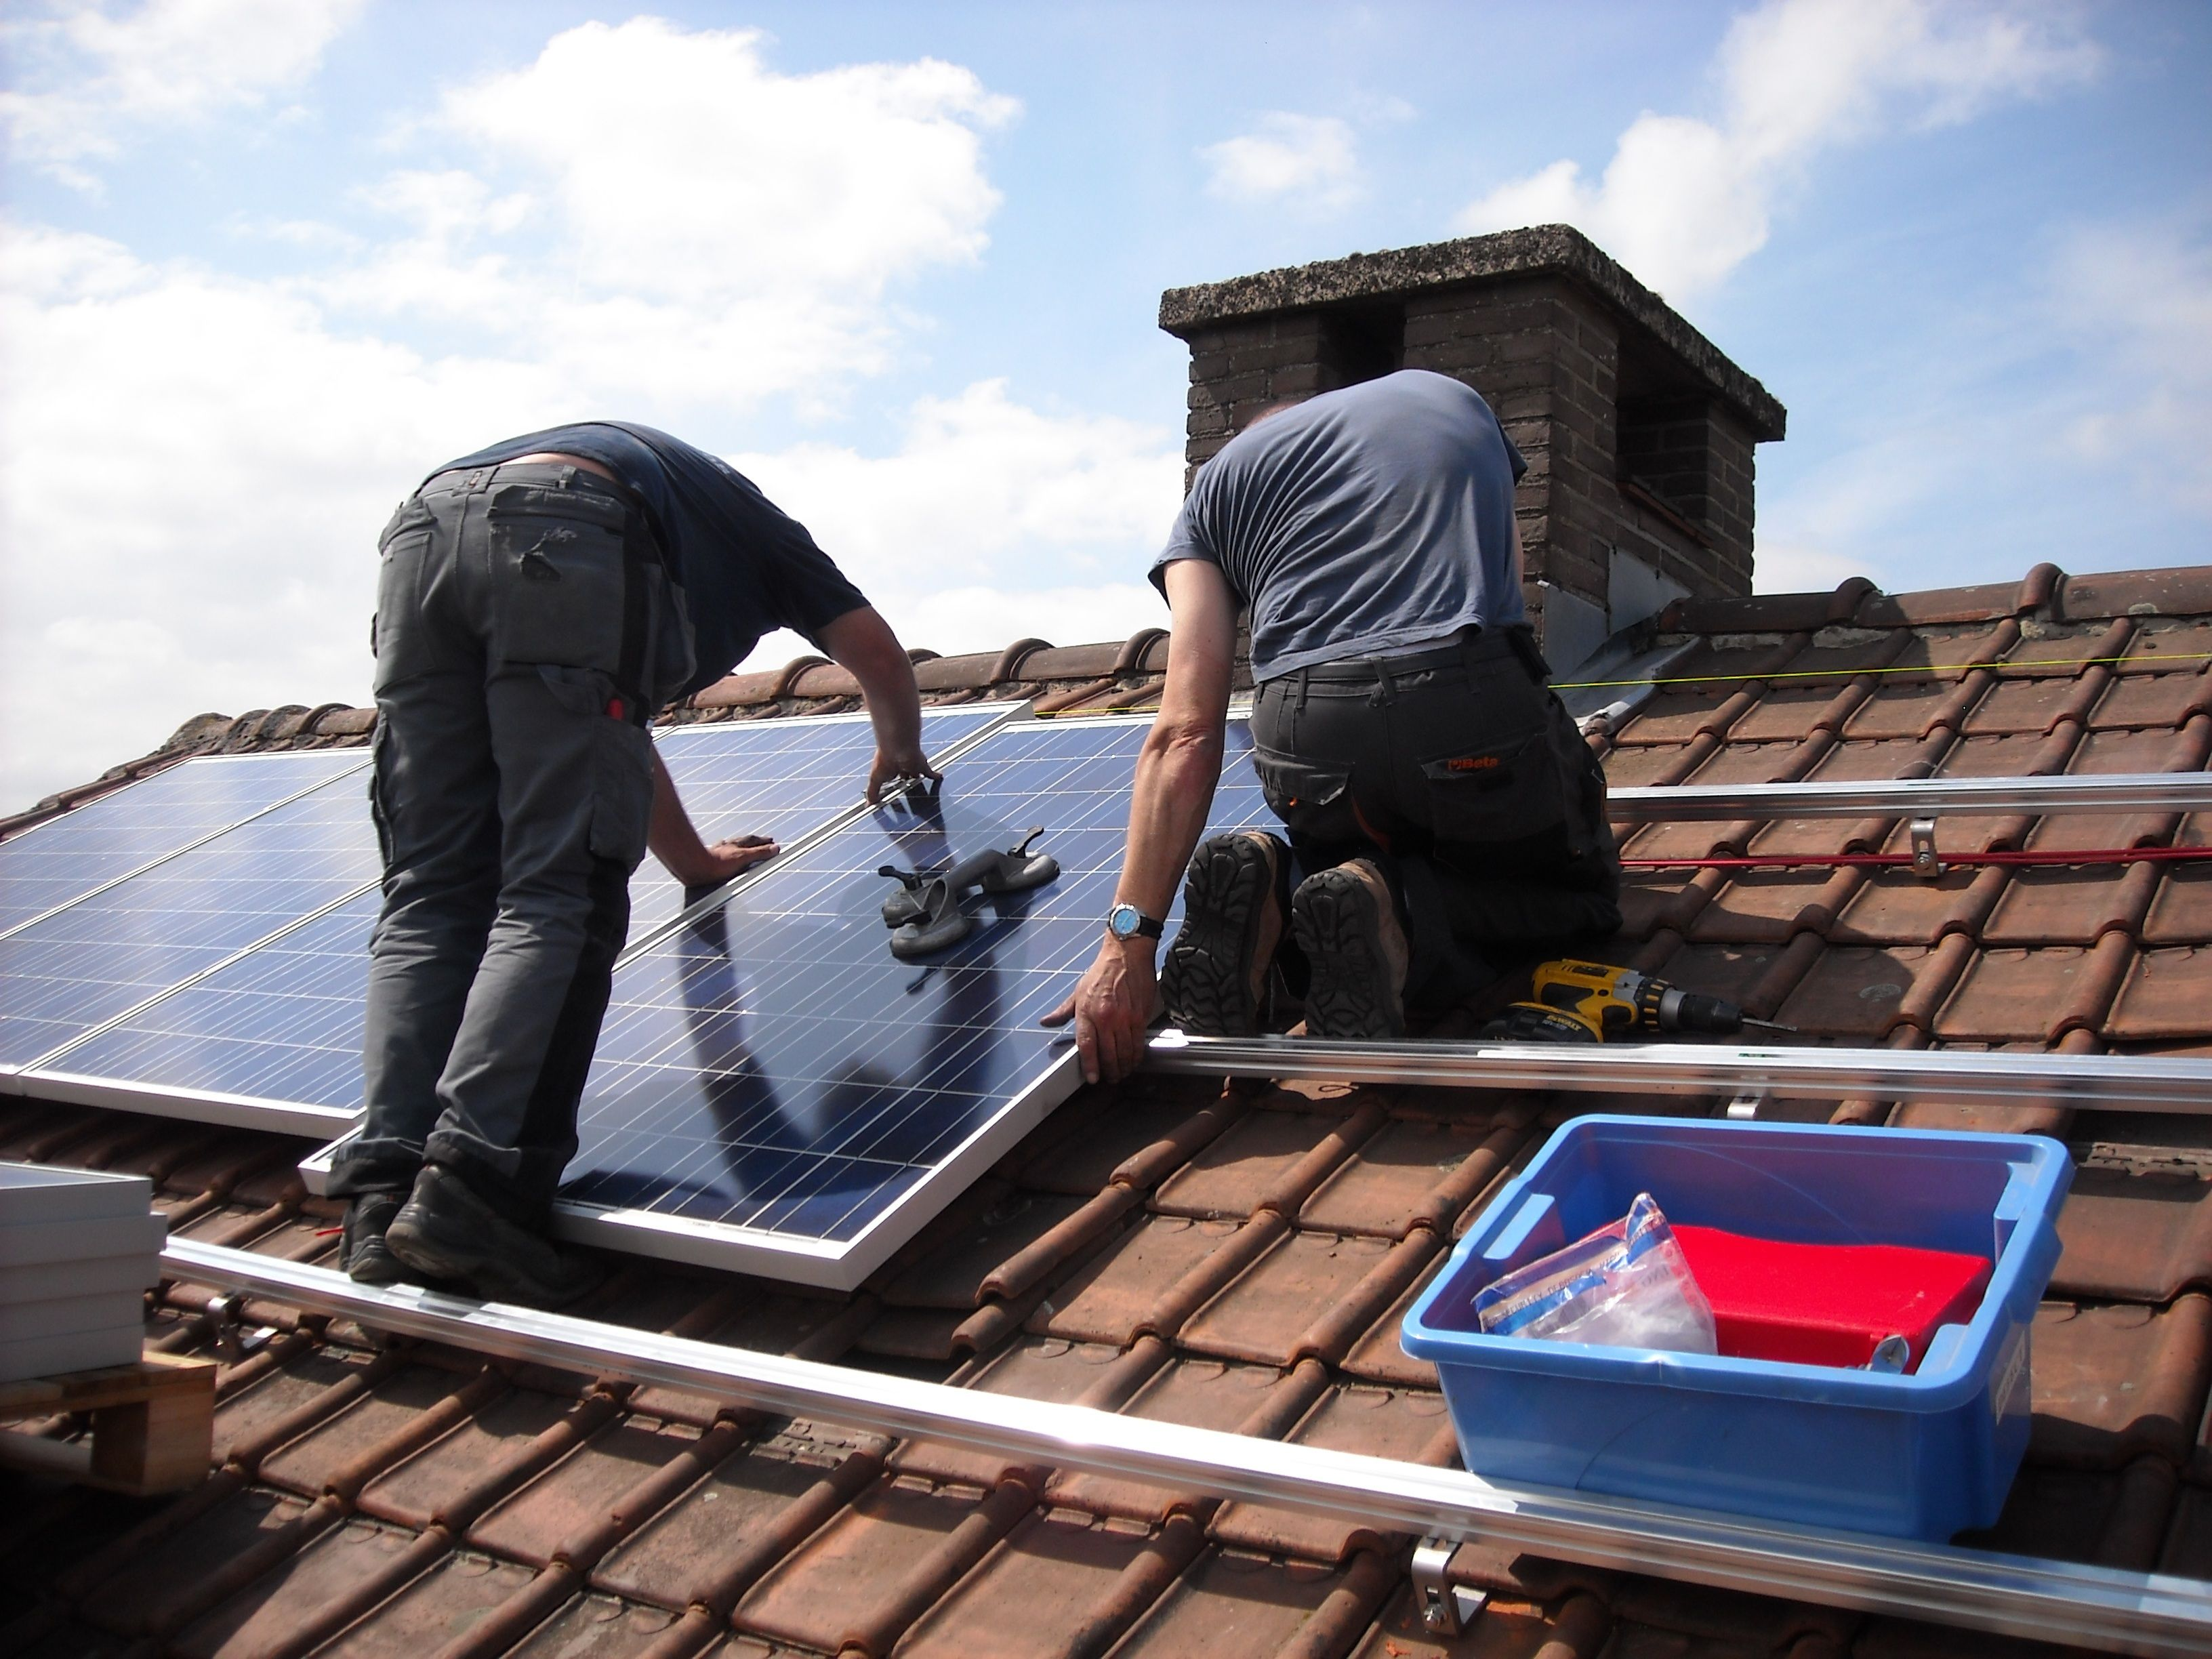 Council to help pensioners go solar and cut power bills